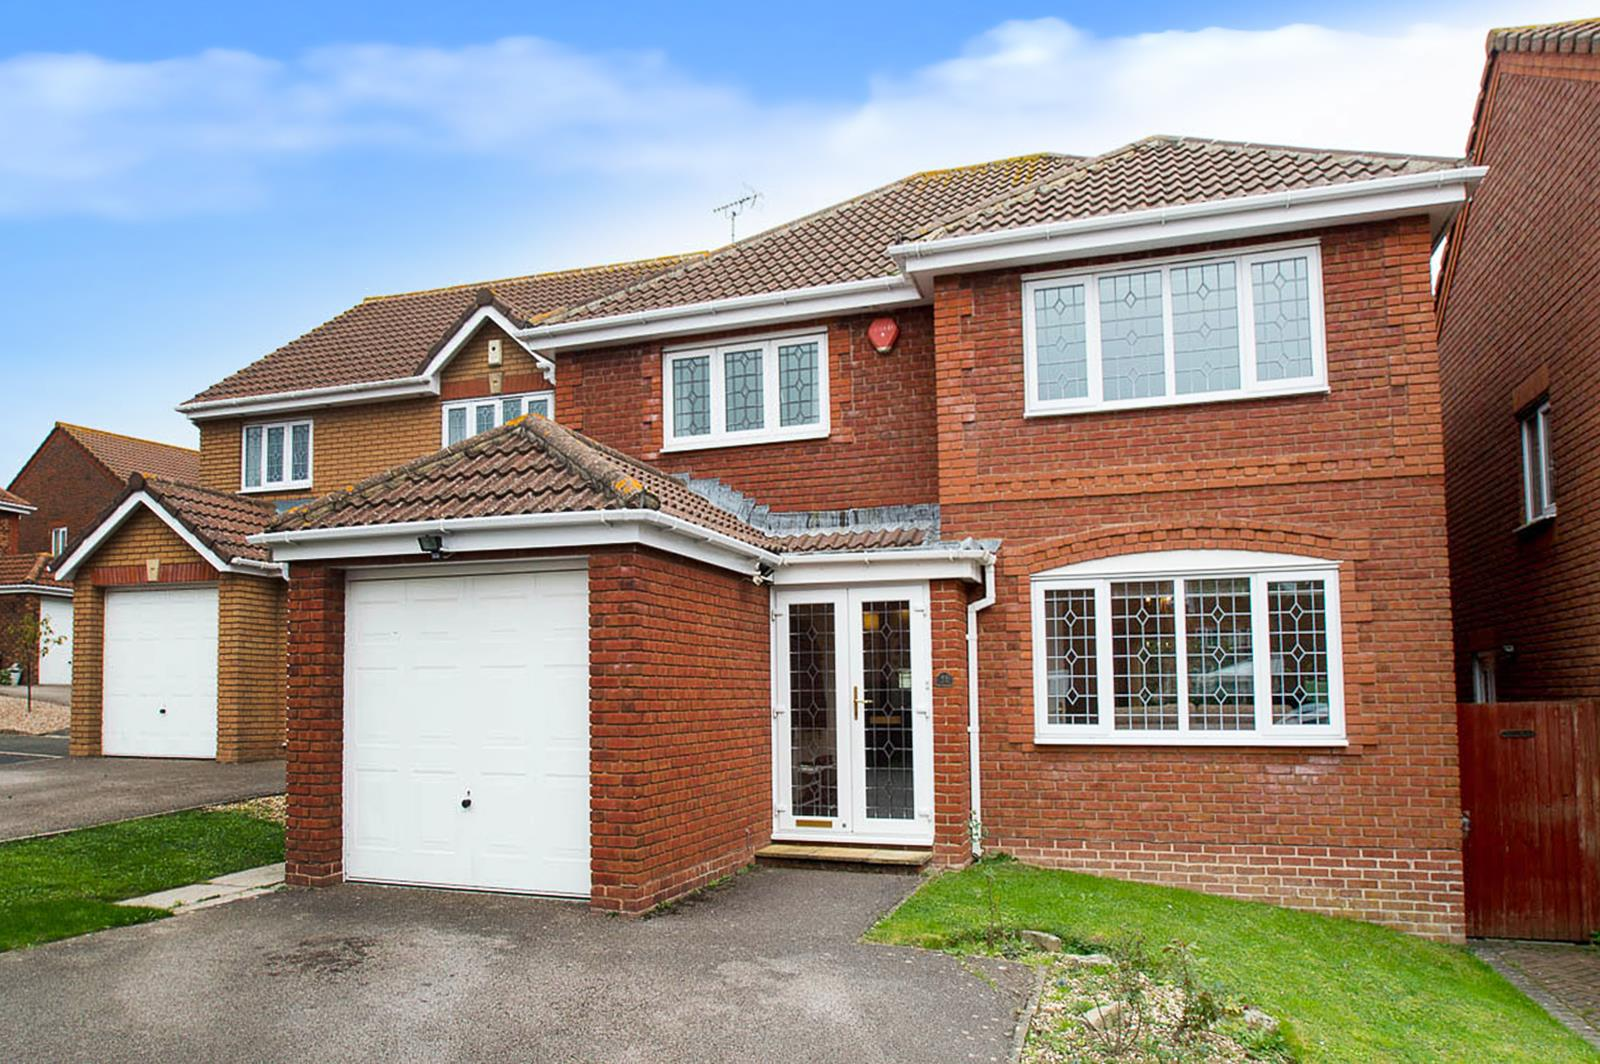 4 Bedrooms Detached House for sale in Cuckmere Drive, Stone Cross, Pevensey